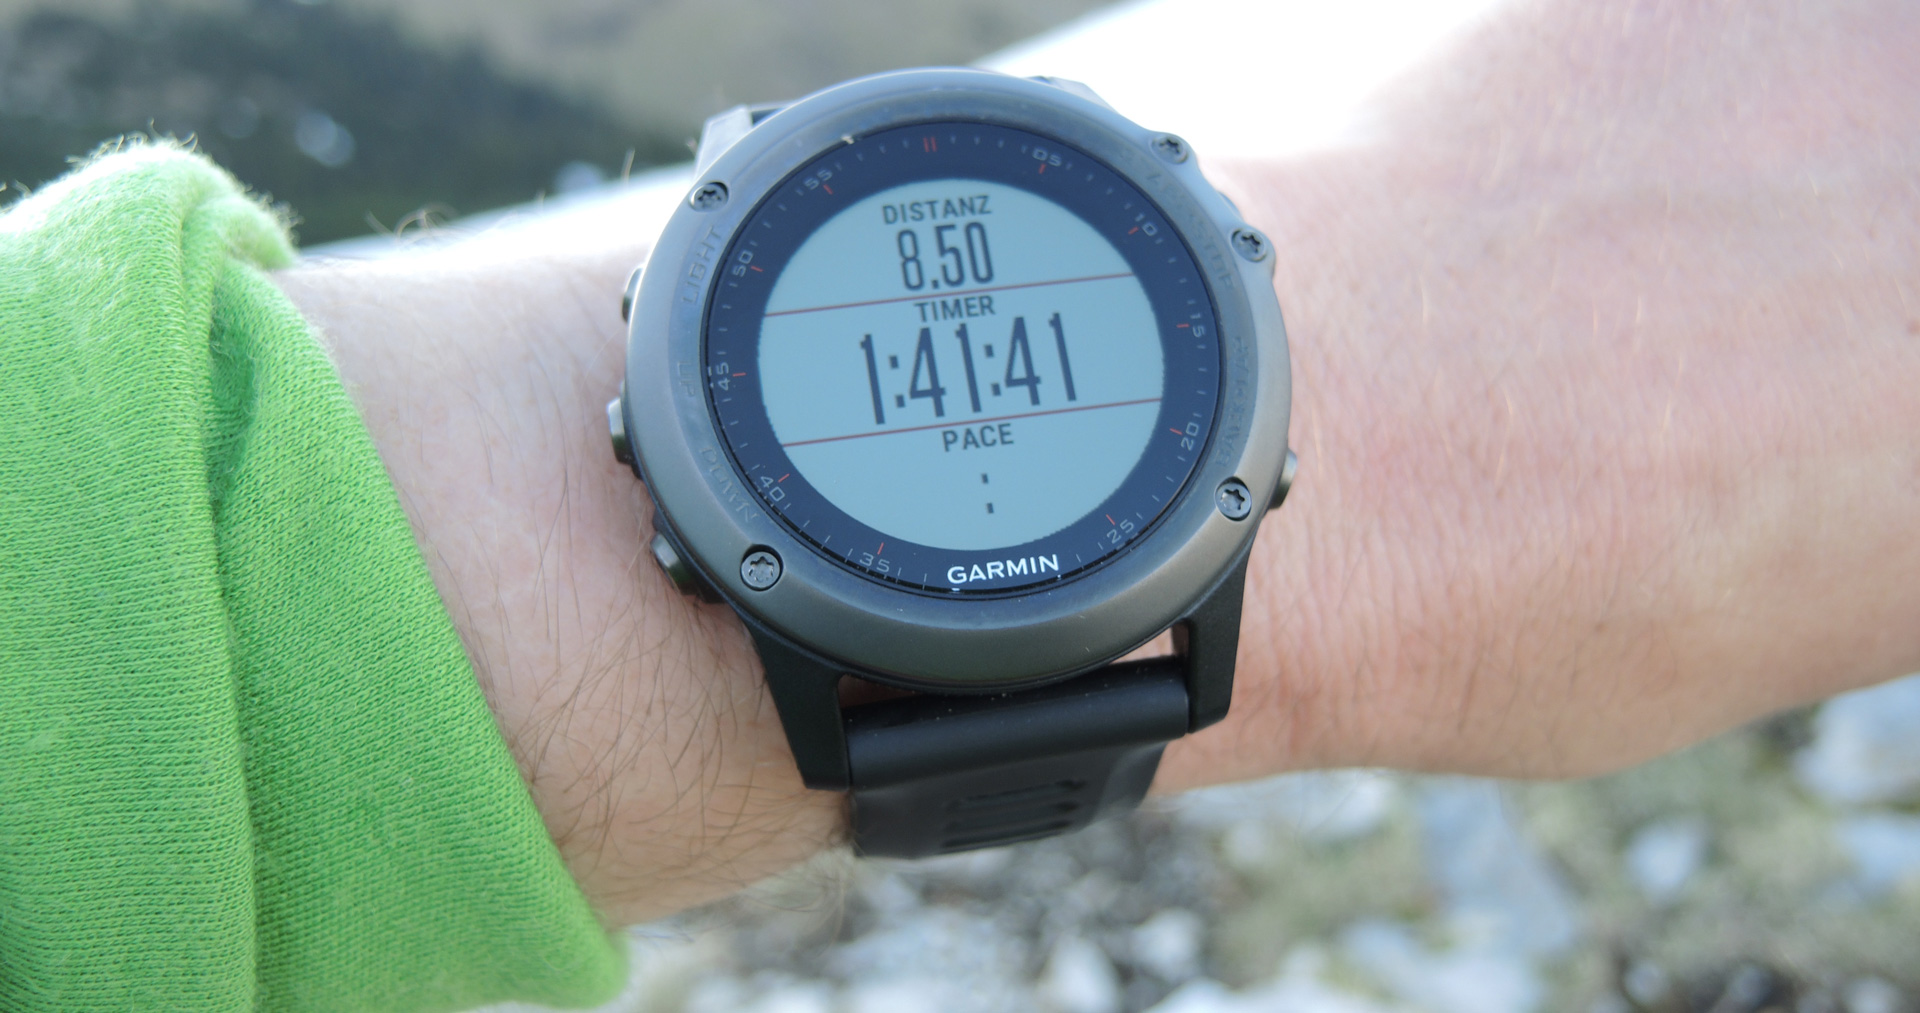 garmin fenix 3 gps uhr im test der allesk nner. Black Bedroom Furniture Sets. Home Design Ideas